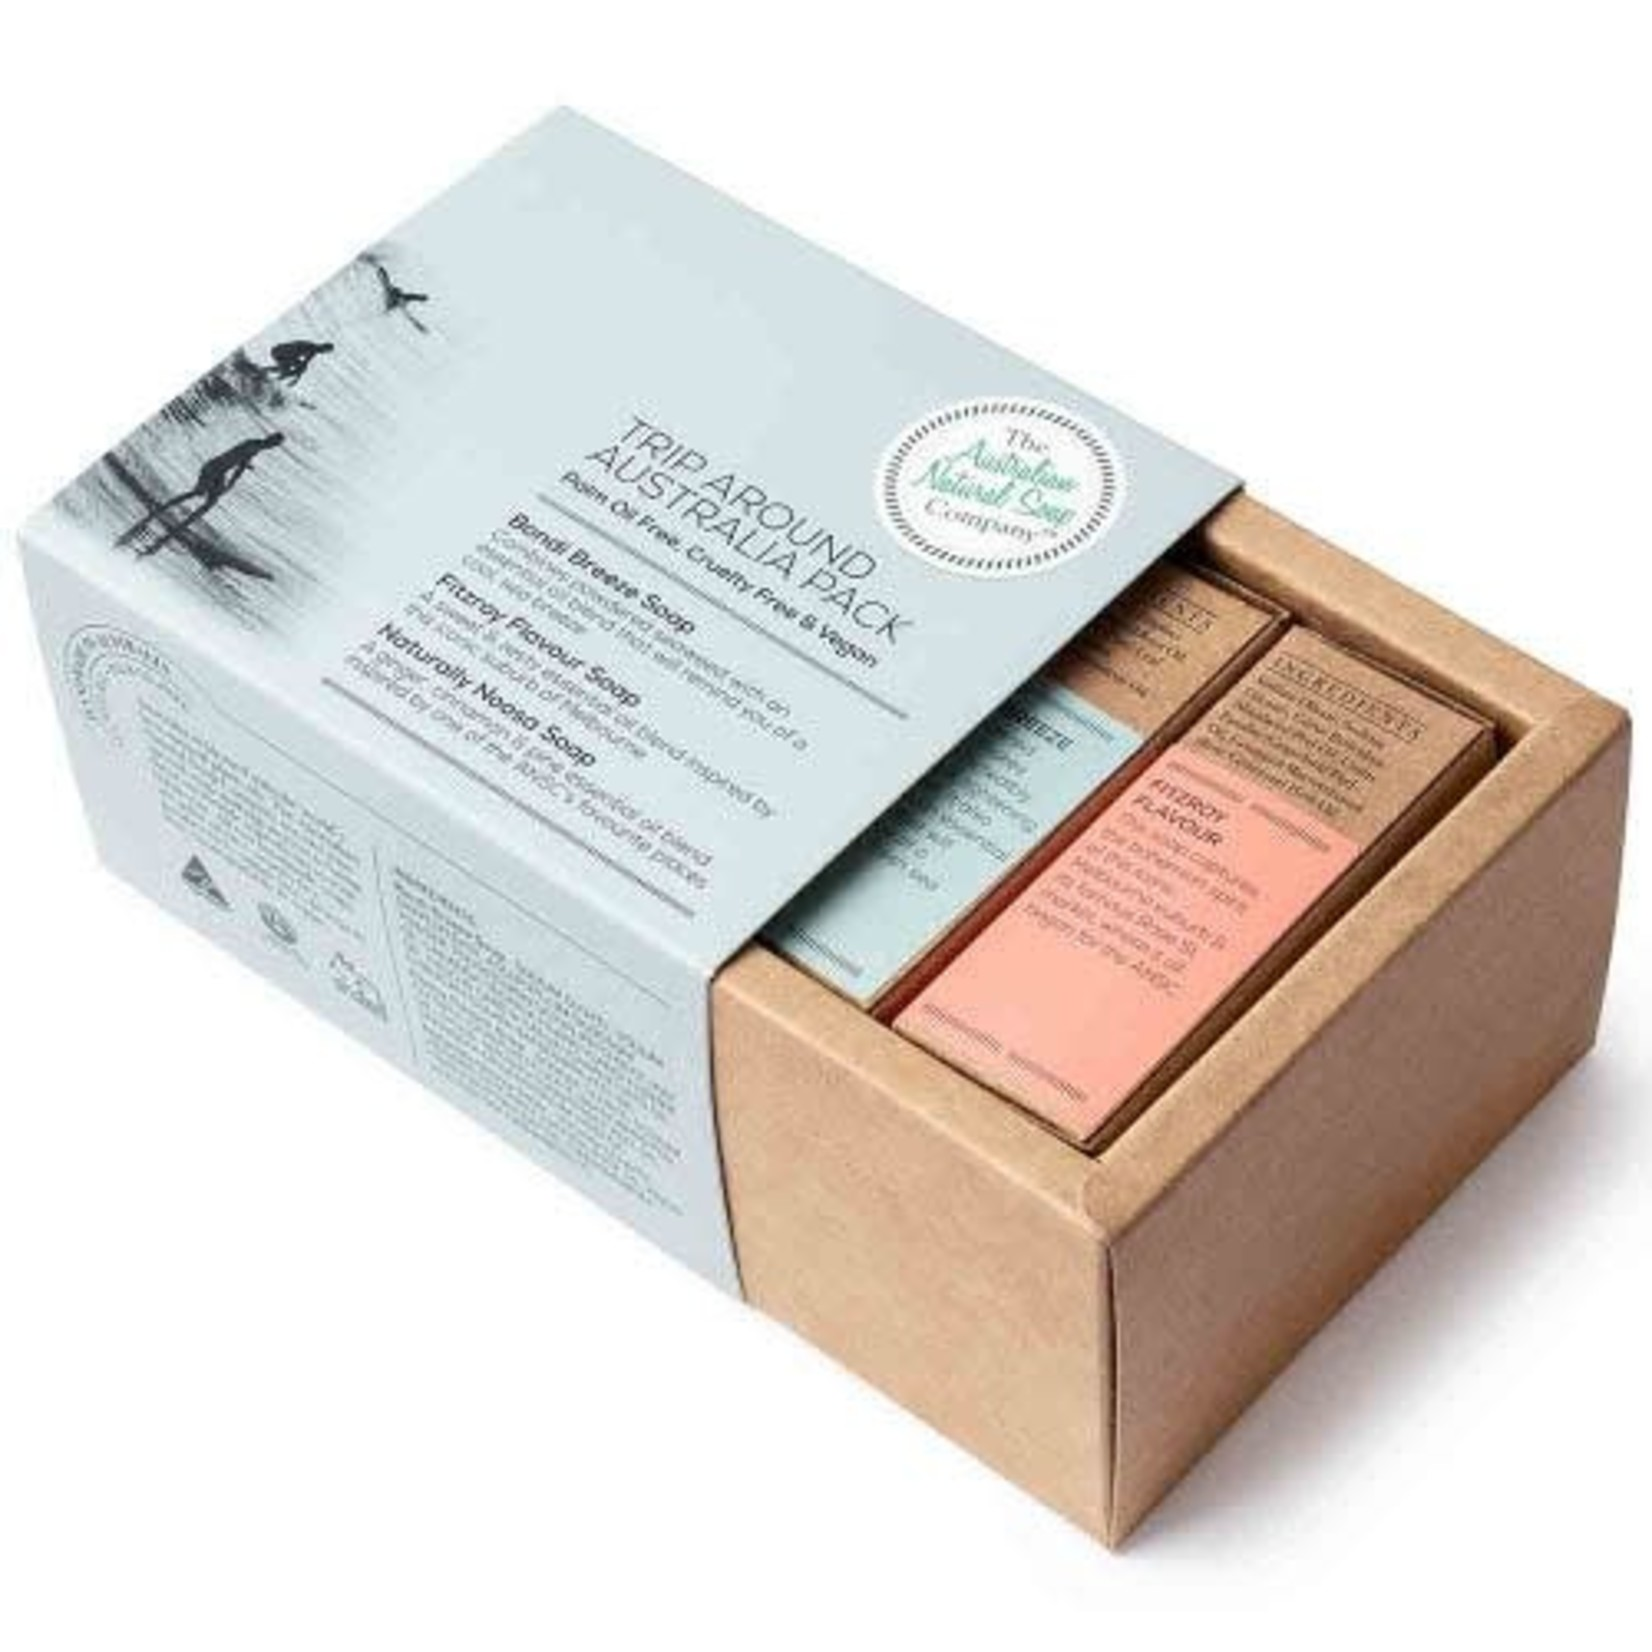 The Australian Natural Soap Company The Australian Natural Soap Company Trip Around Australia  Gift Pack 3